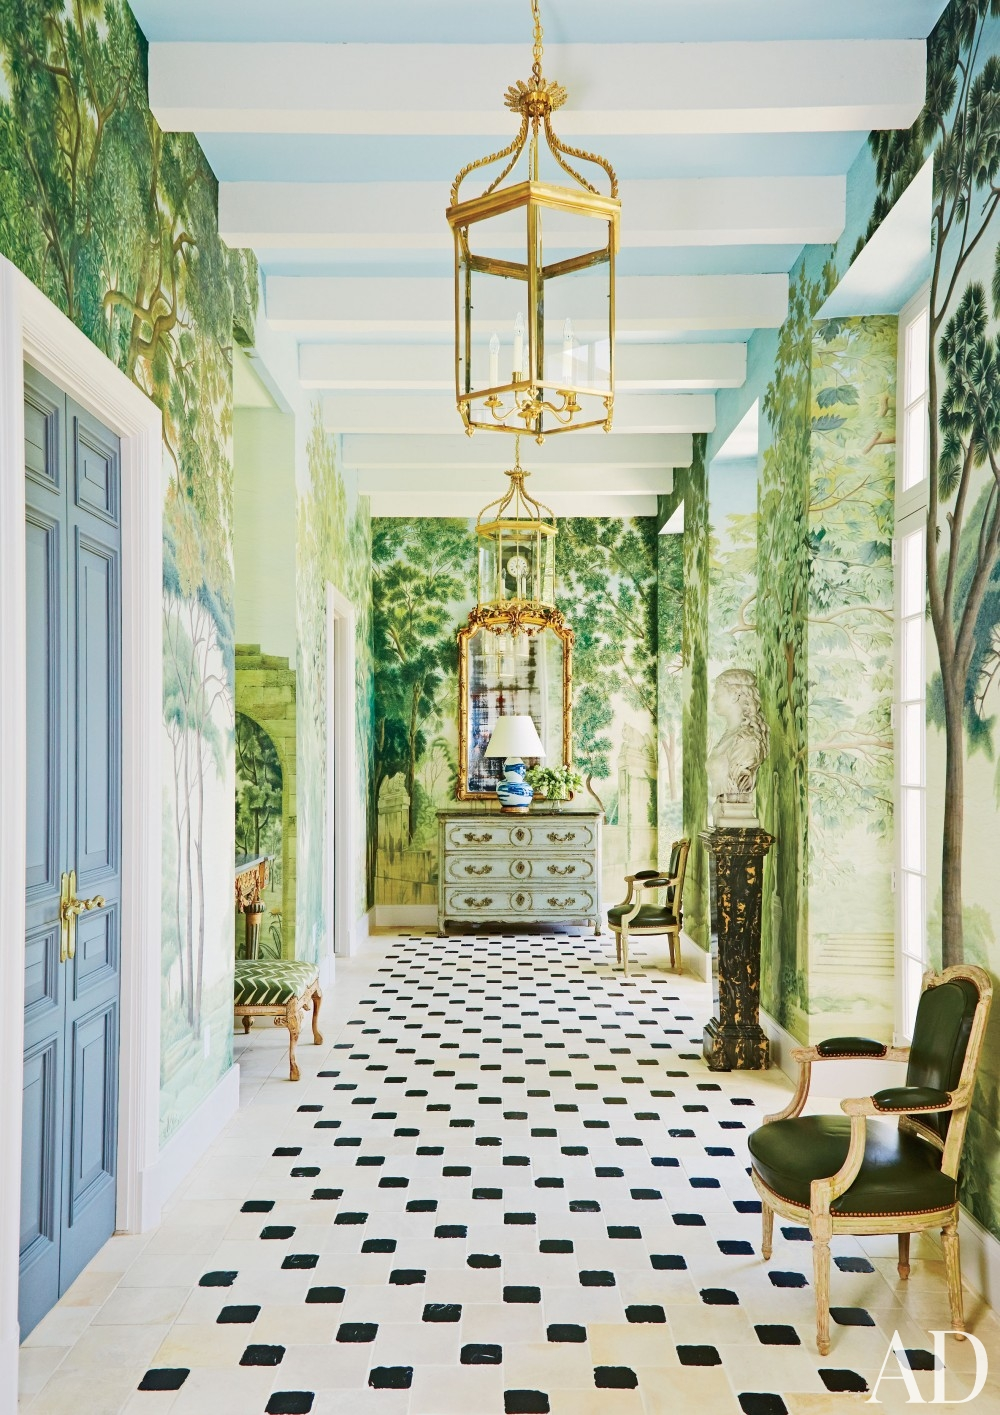 wall mural plants leafy greens checkered floor decorating sun room blue ceiling blue painted double doors french revival style green leather upholstered louis chair gold gilded mirror better decorating bible blog